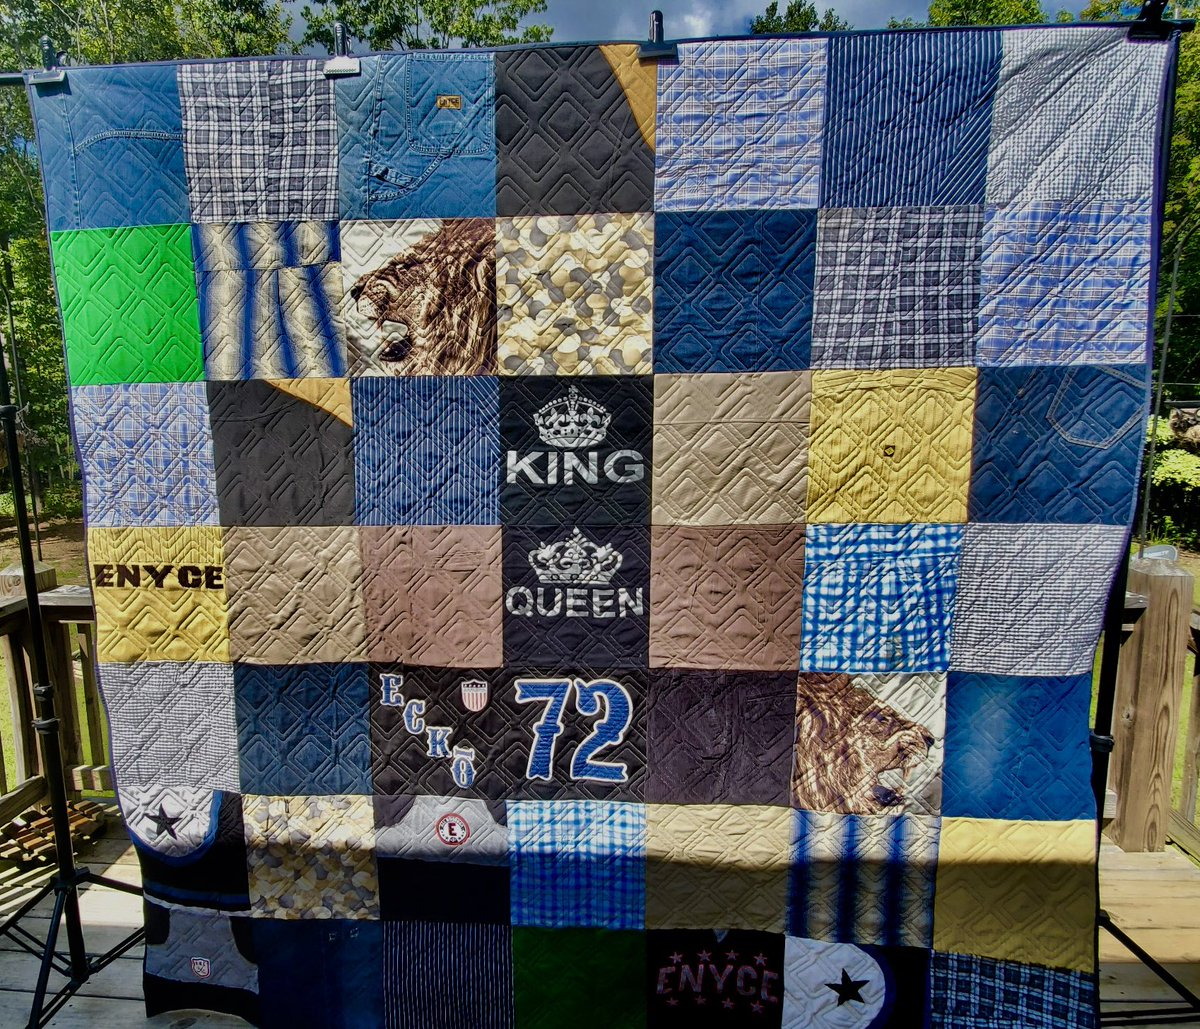 It's always such a joy to turn shirts and clothing into a quilt that can be snuggled under and   treasured for years to come. Poly Select Quilters Dream Batting and INNOVAtech thread was the perfect match for this quilt! #battgirls #memoryquilt #edgetoedgequilting #tshirtquilt https://t.co/lAxlBFn11p